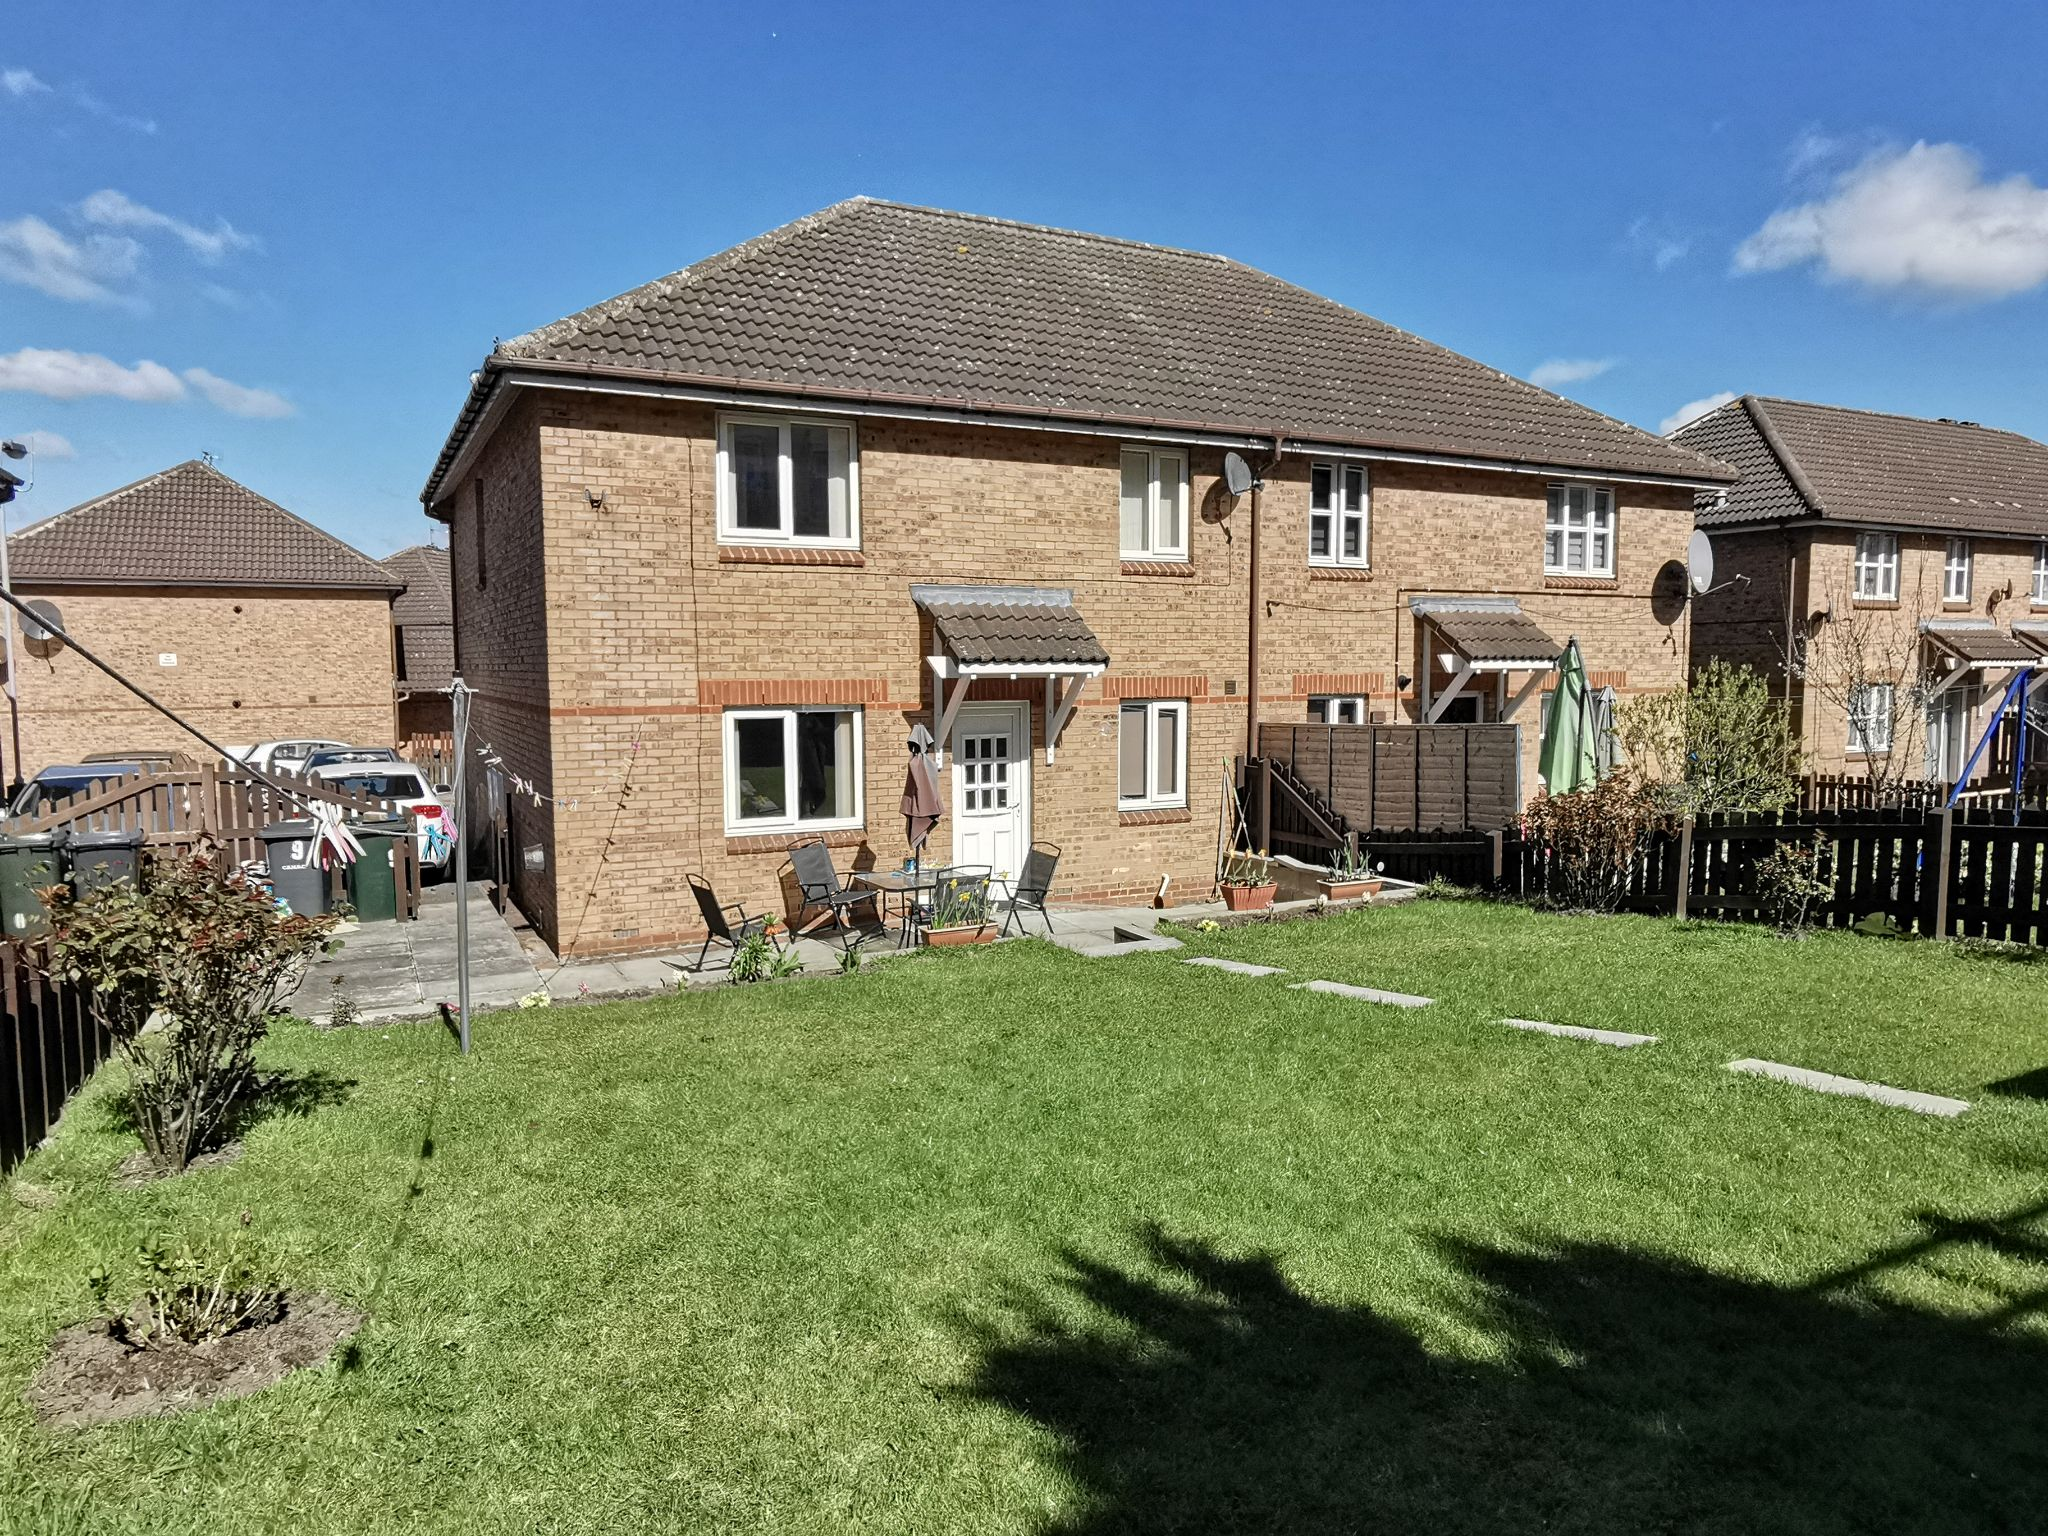 4 bedroom semi-detached house For Sale in Bradford - Photograph 1.